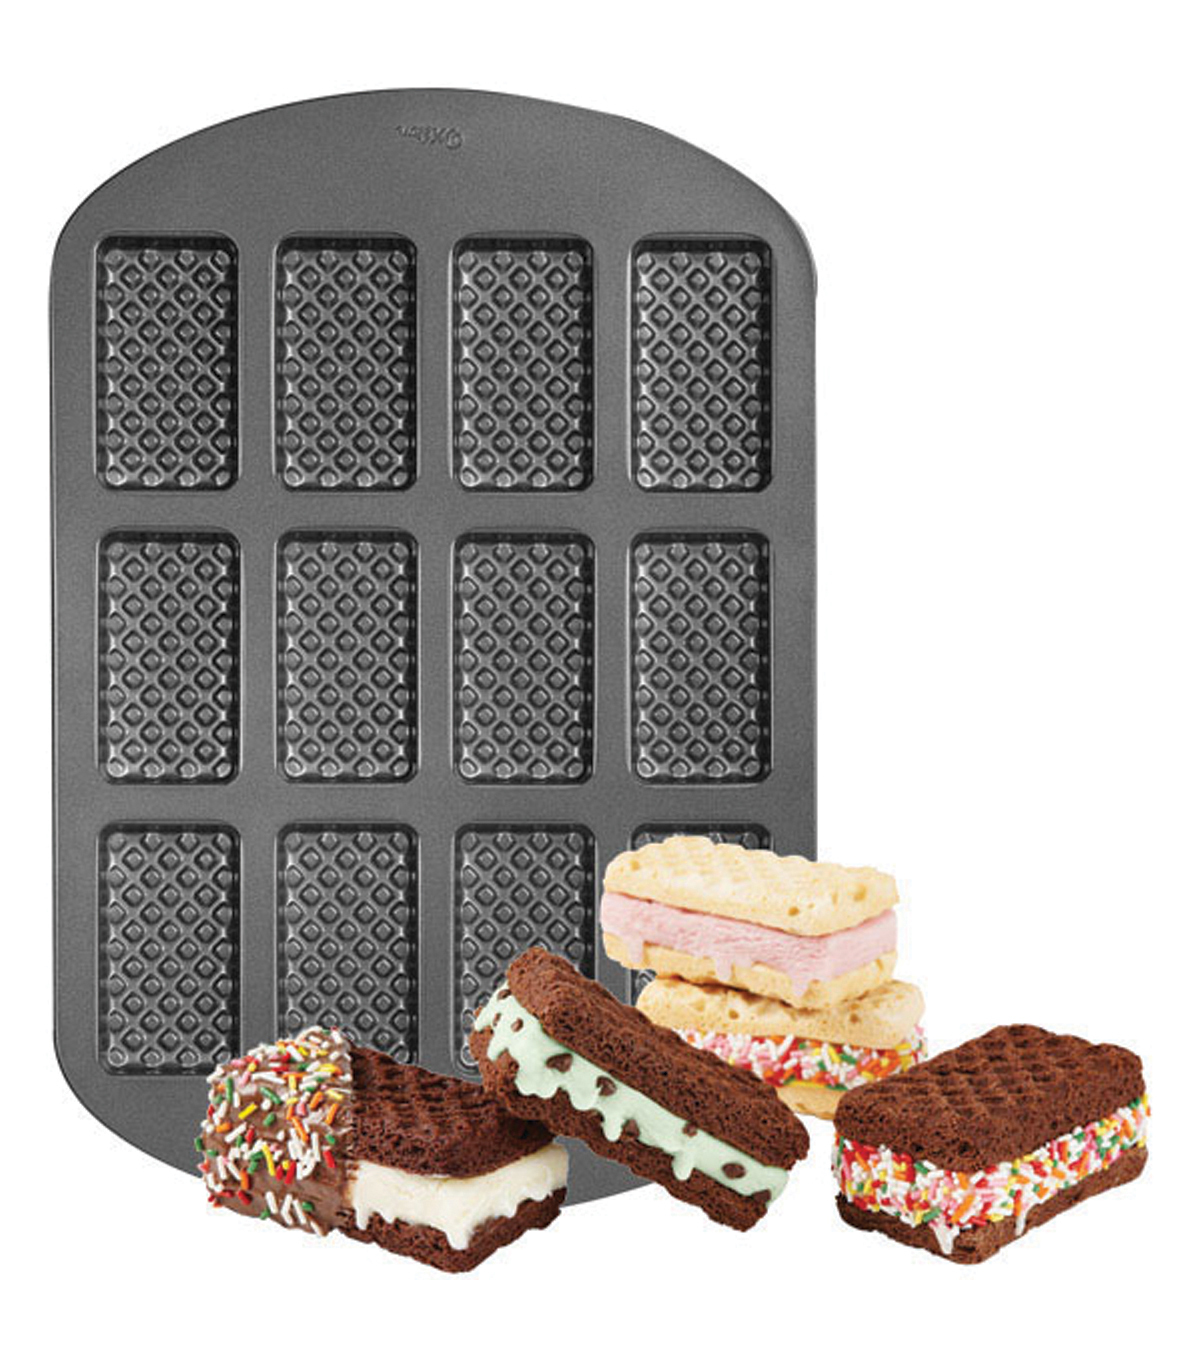 Wilton Ice Cream Sandwich Pan-12 Cavity